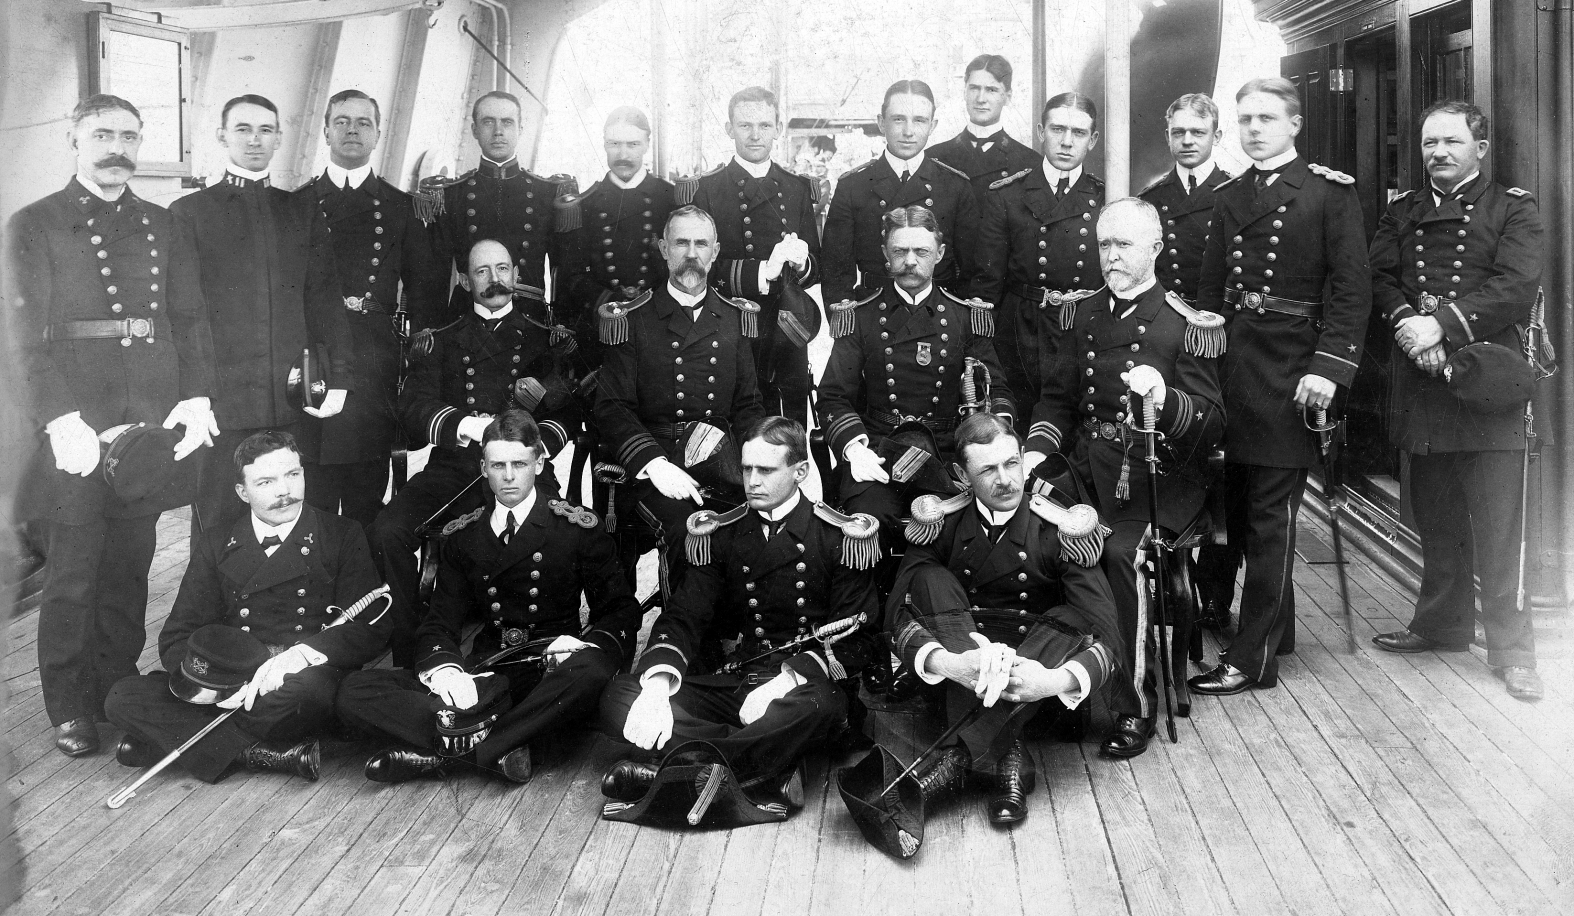 Officers, USS Chicago